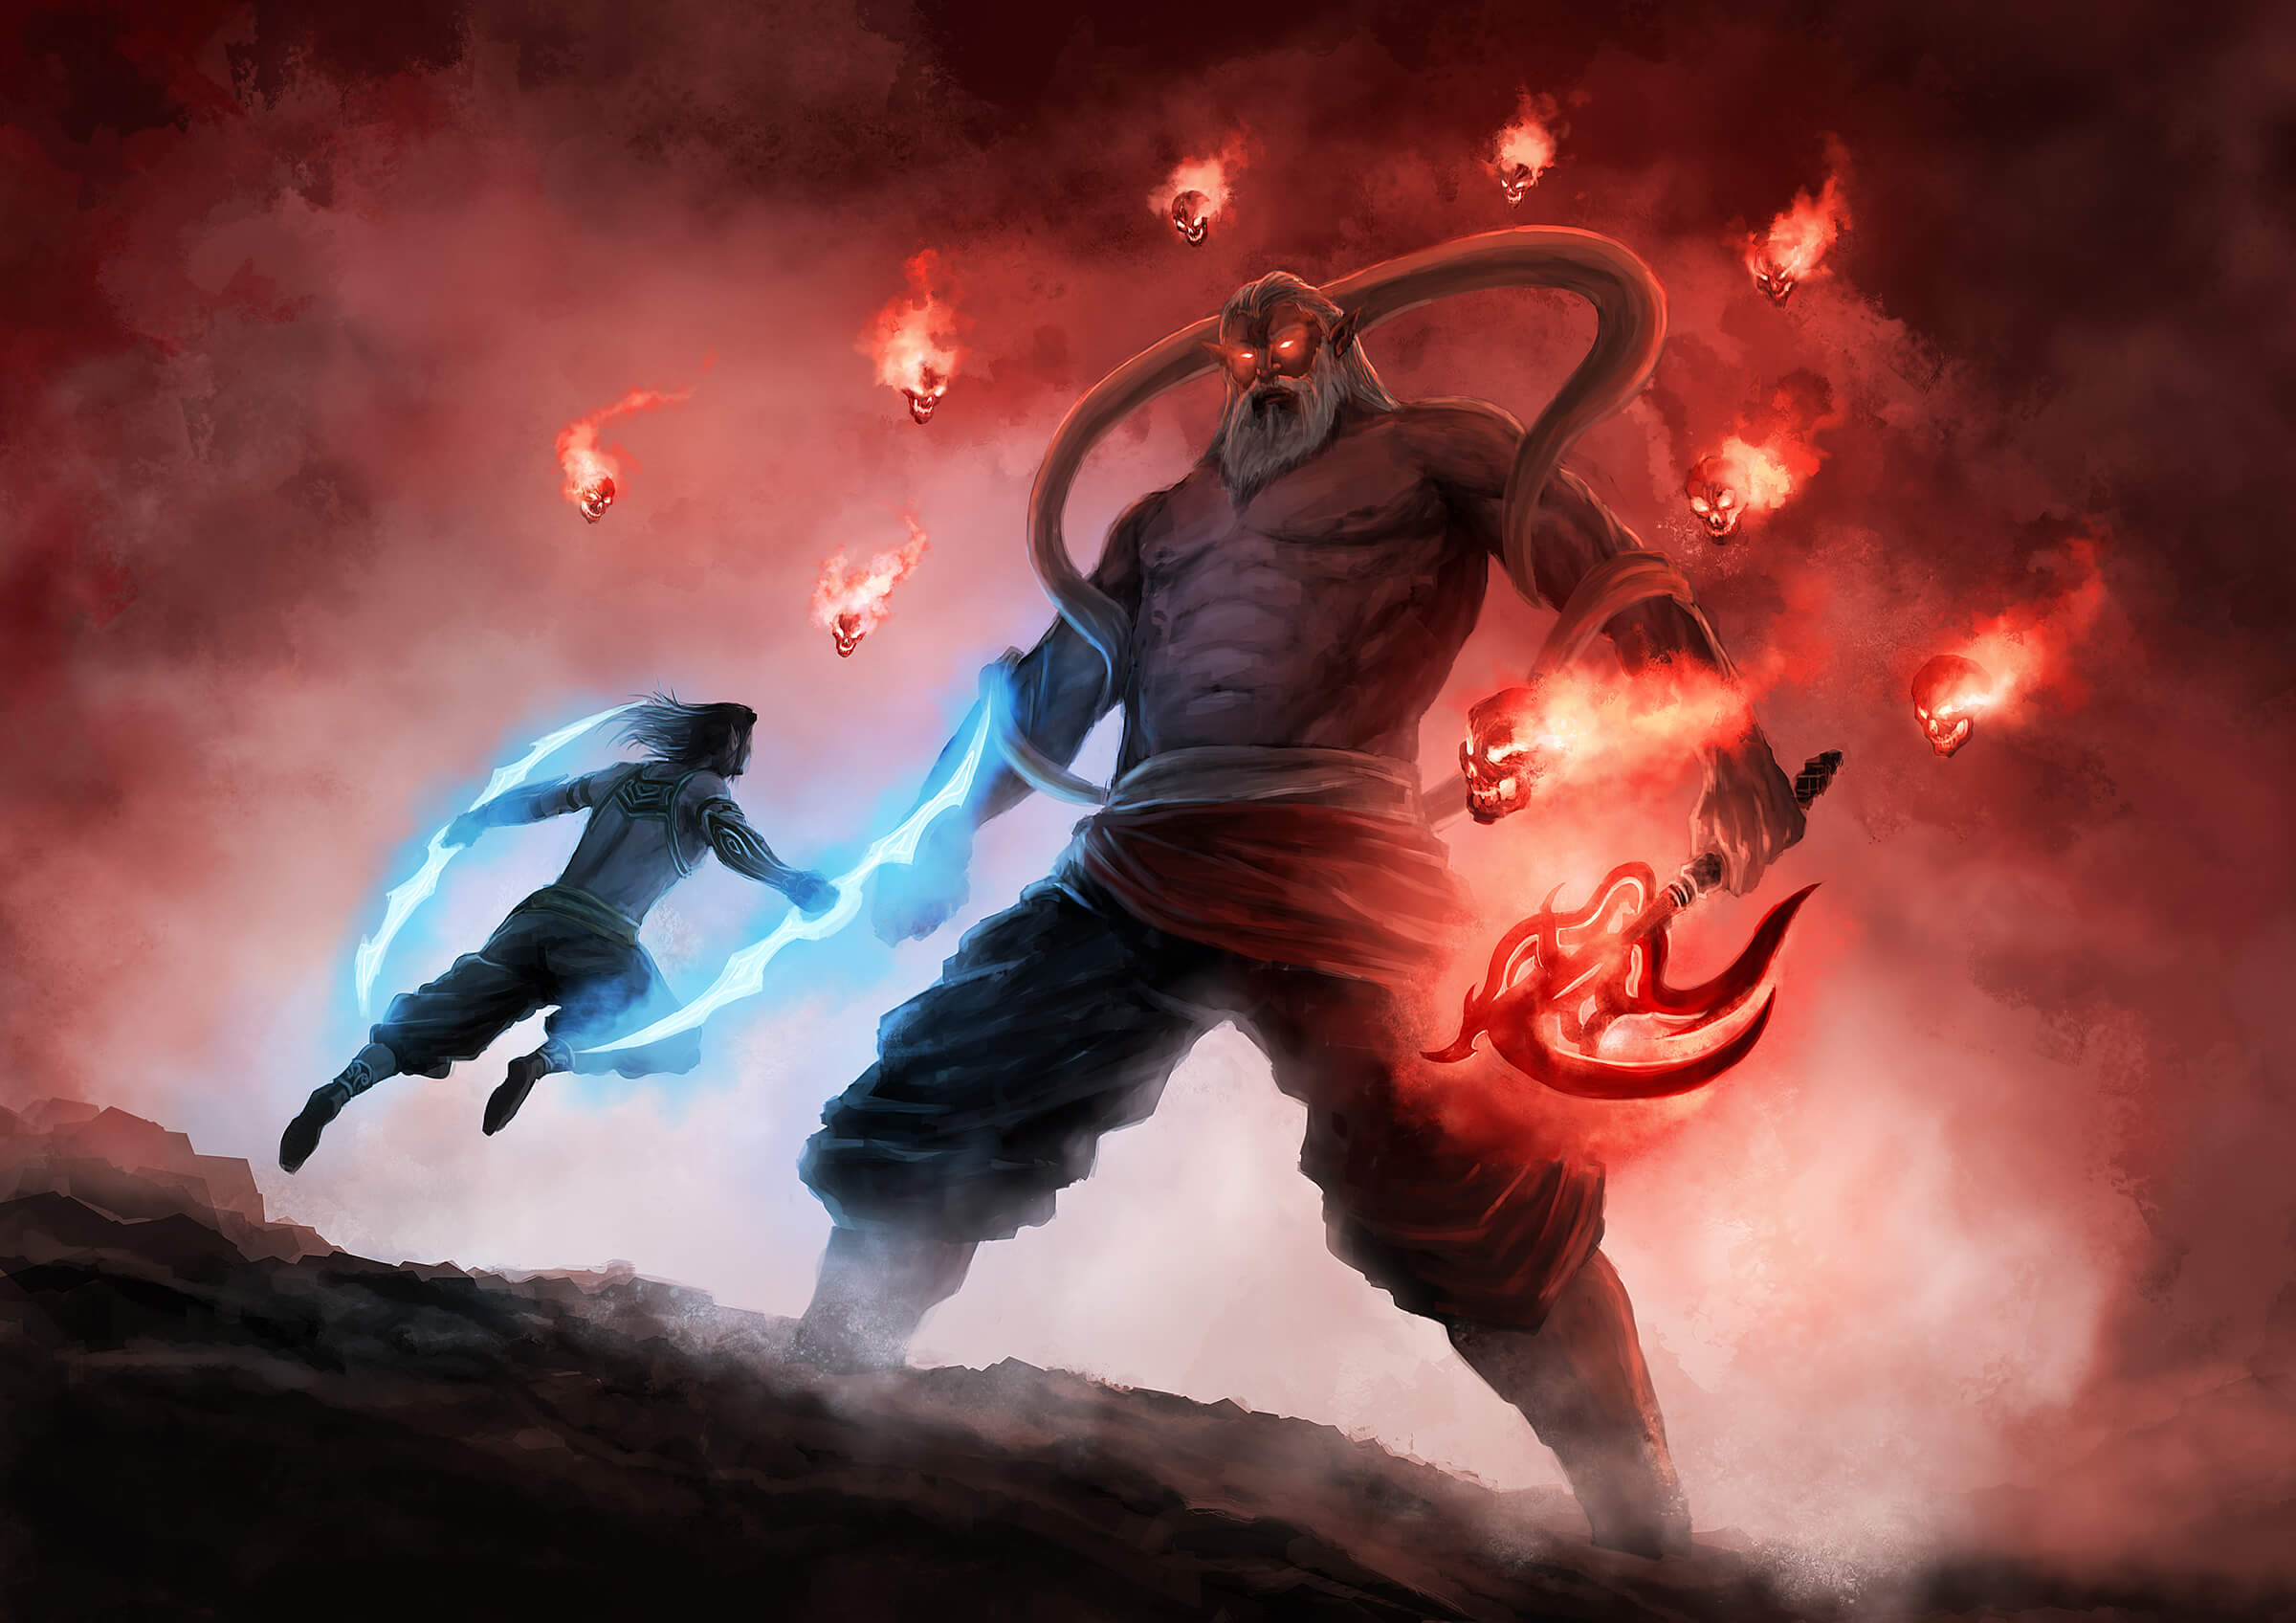 A man wielding glowing, double-sided blades leaps at an enormous, horned demon surrounded by flaming red skulls.